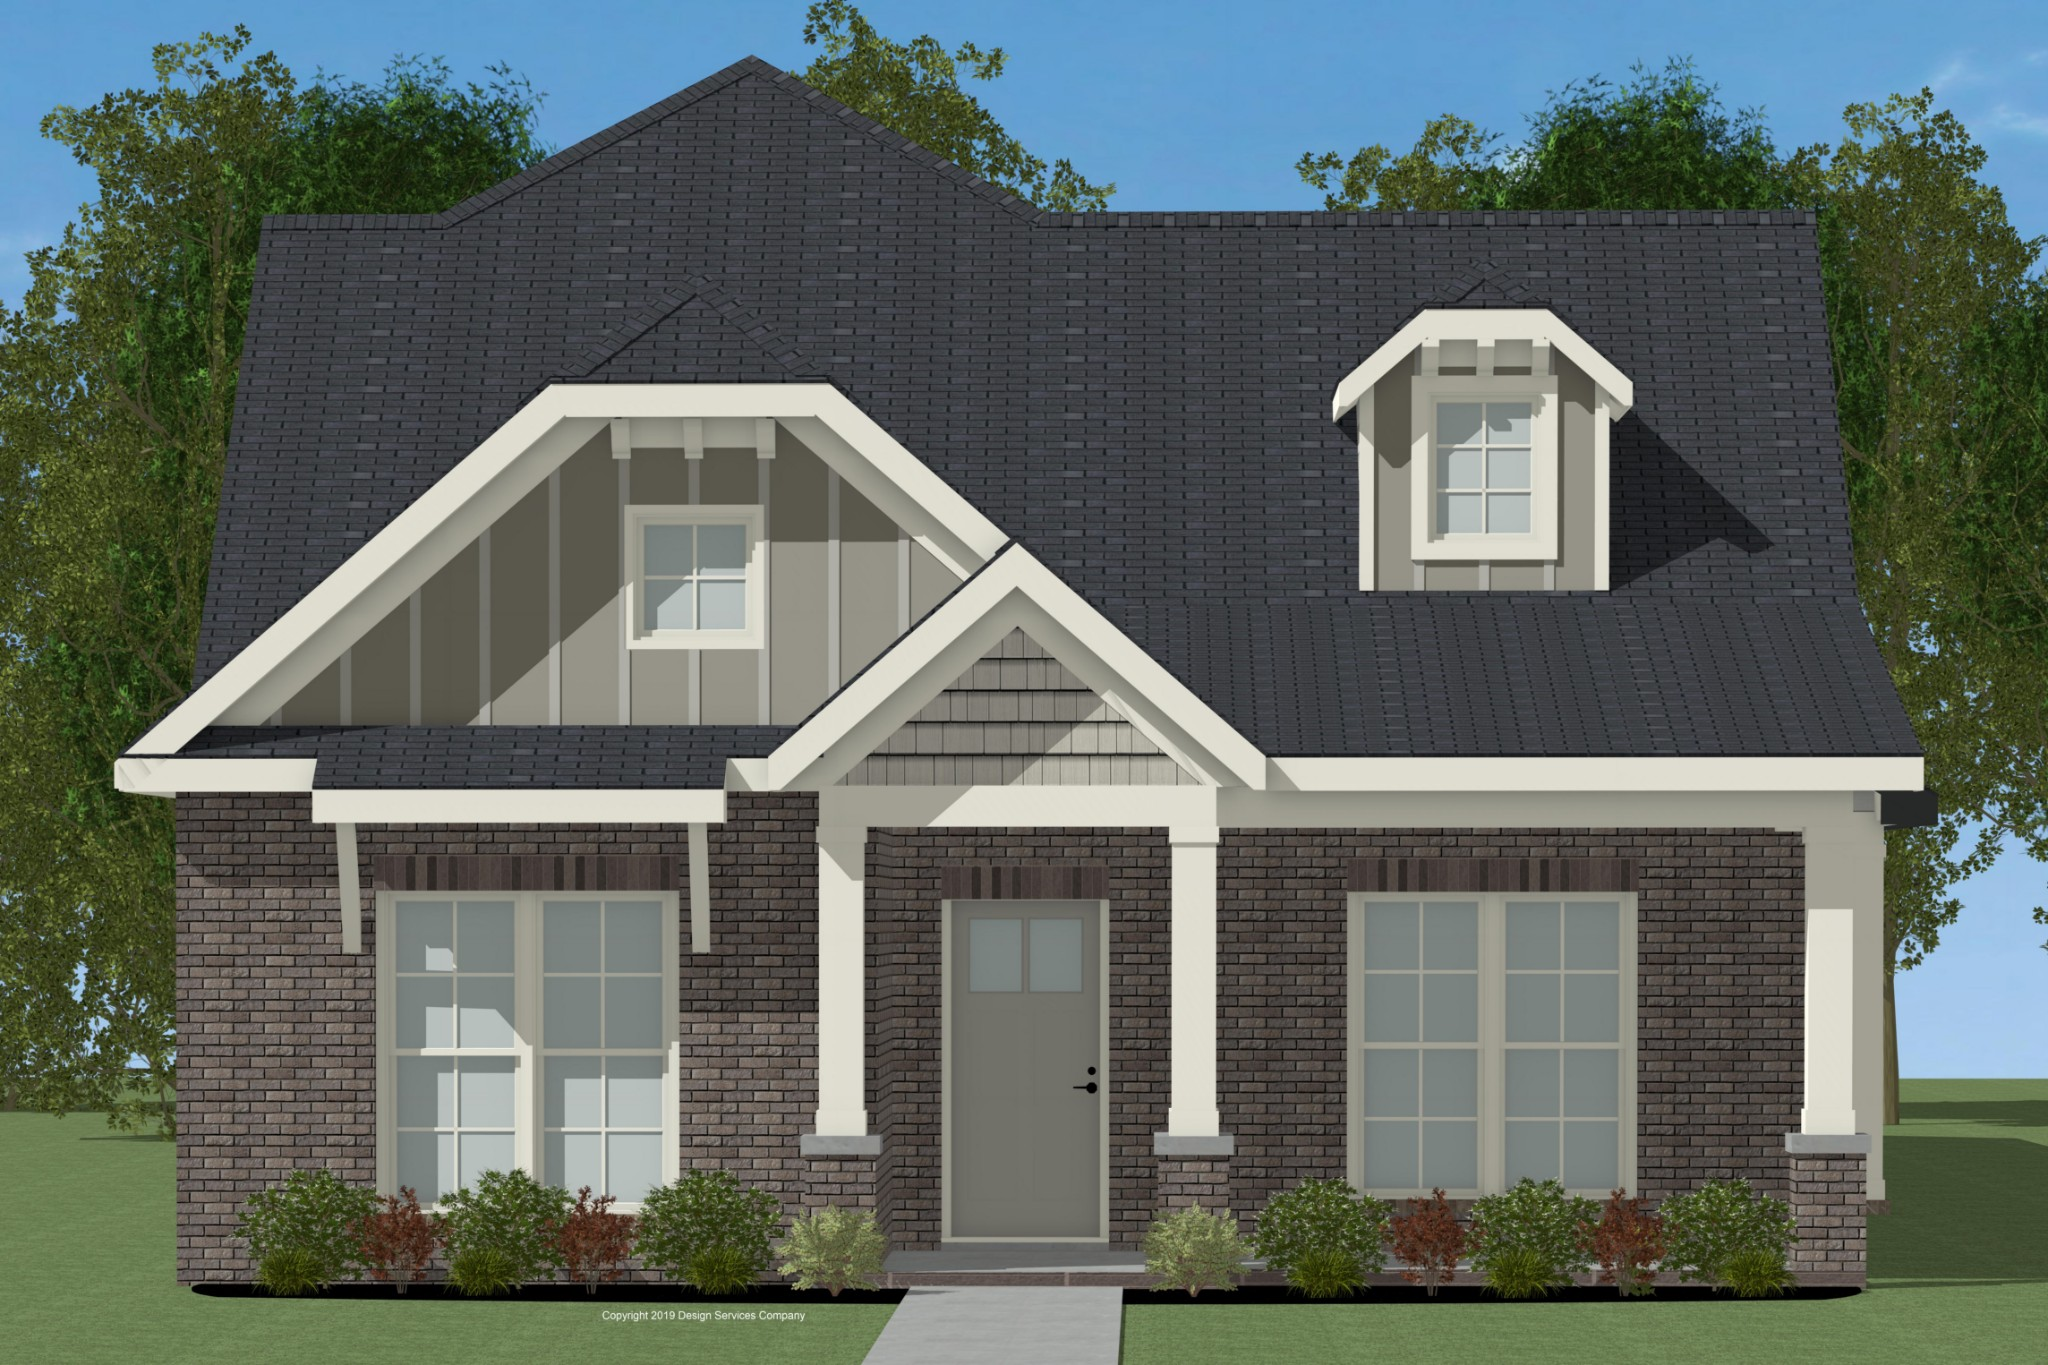 6417 Armstrong Dr Property Photo - Hermitage, TN real estate listing